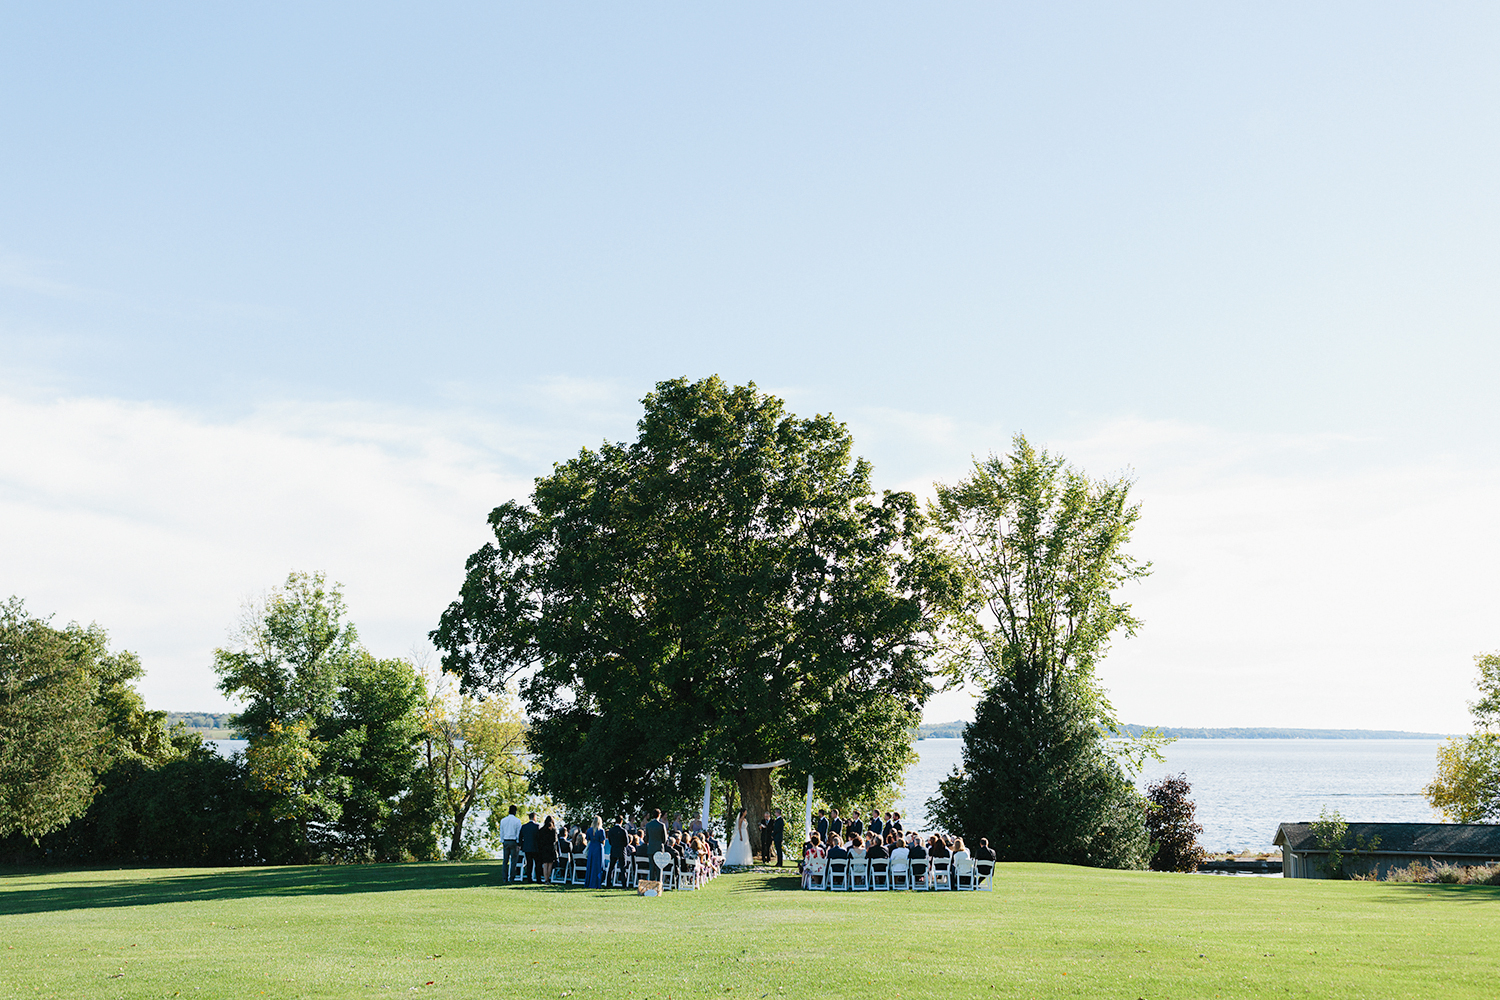 ceremony-bride-and-groom-vows-At-Egaridge-Resort-Venue-Muskoka-Ontario-Wedding-Photography-by-Ryanne-Hollies-Photography-Toronto-Documentary-Wedding-Photographer.jpg